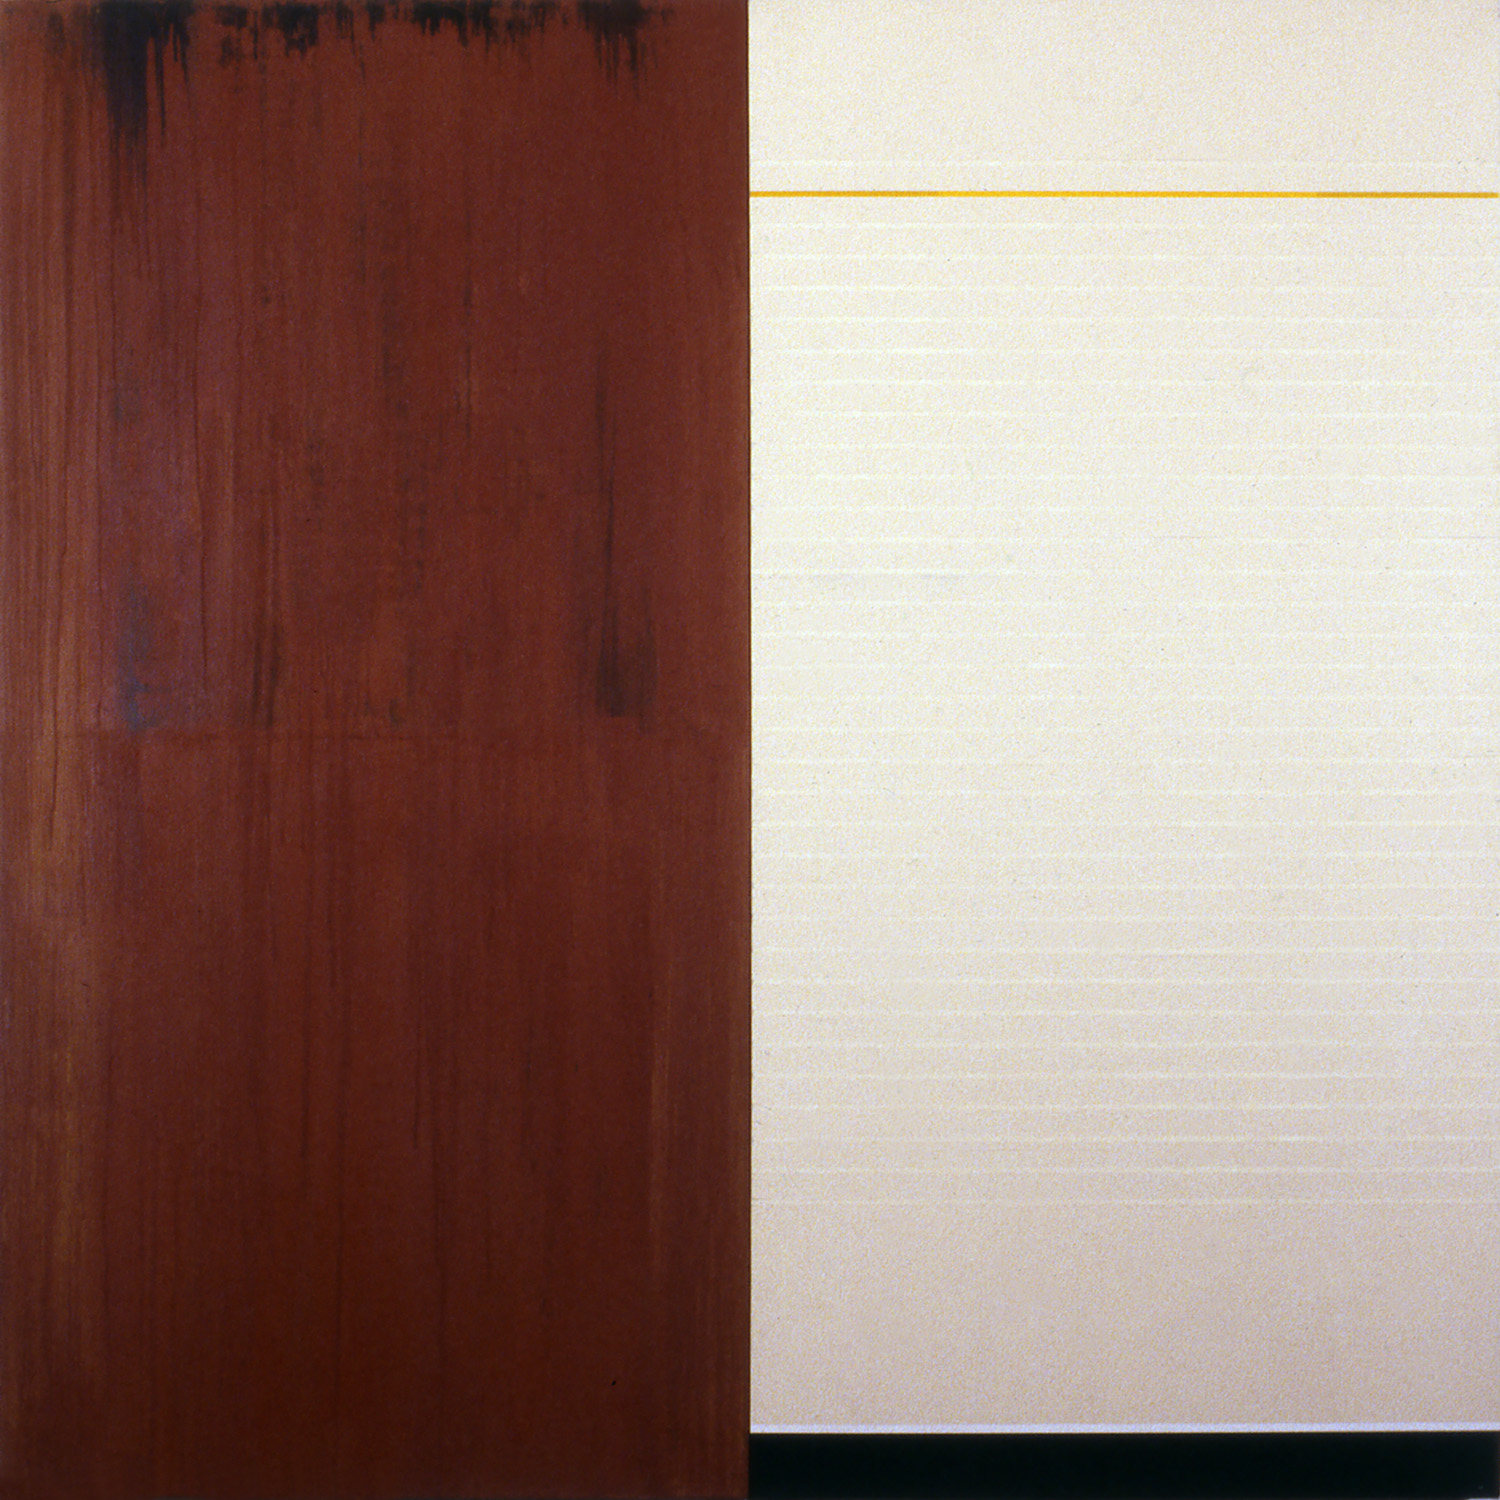 Janus XXV, 1987, Acrylic on canvas over panels, 48 x 48 inches.